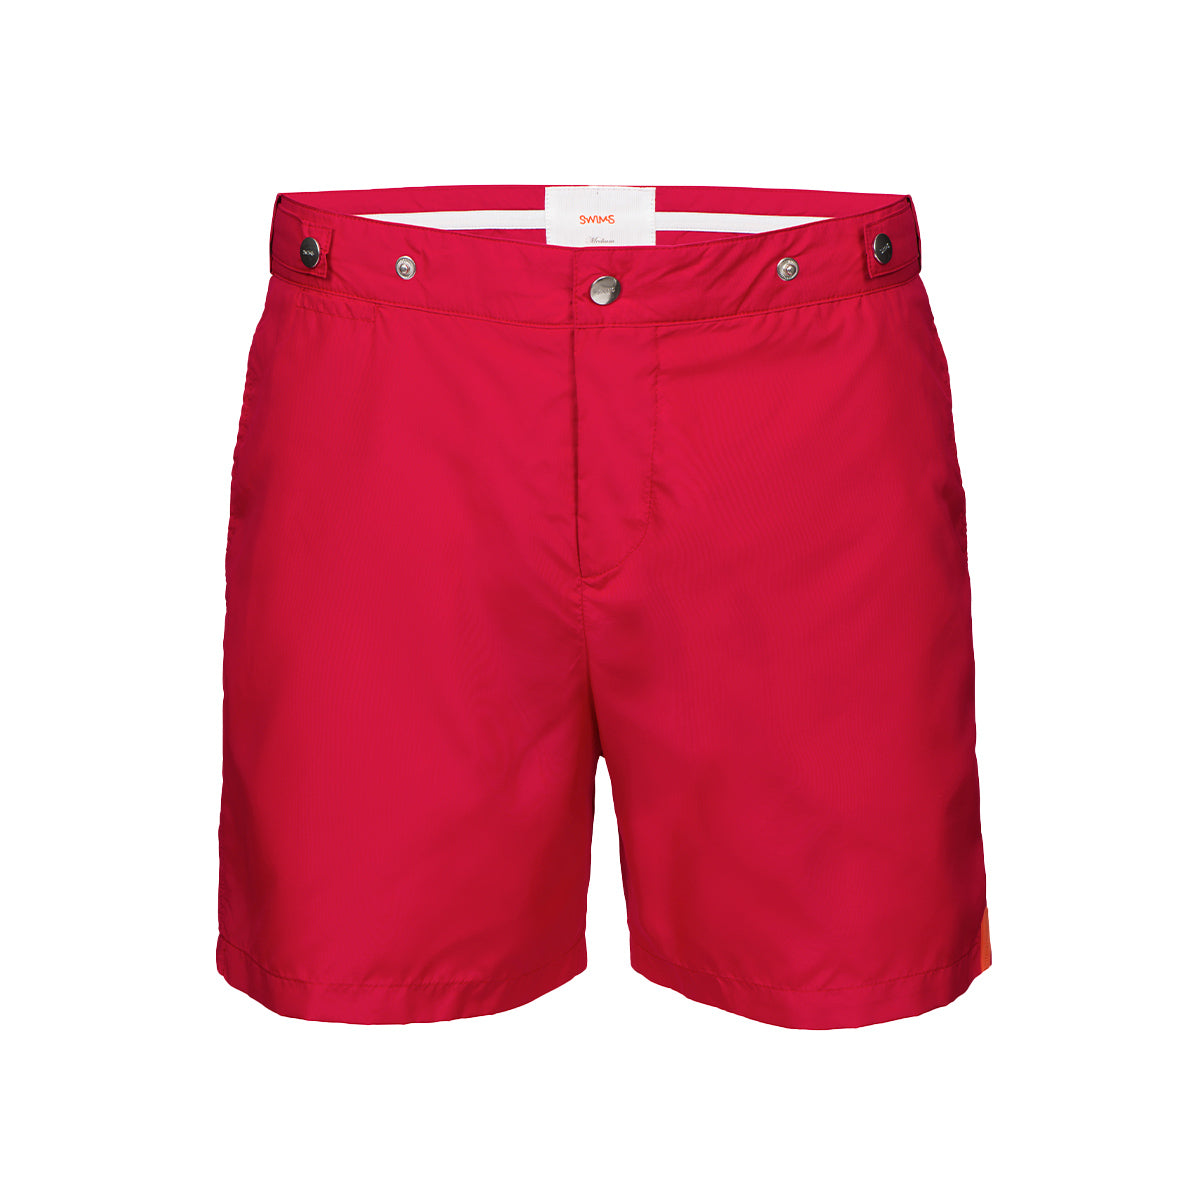 Praiano Solid Bathing Shorts - background::white,variant::red